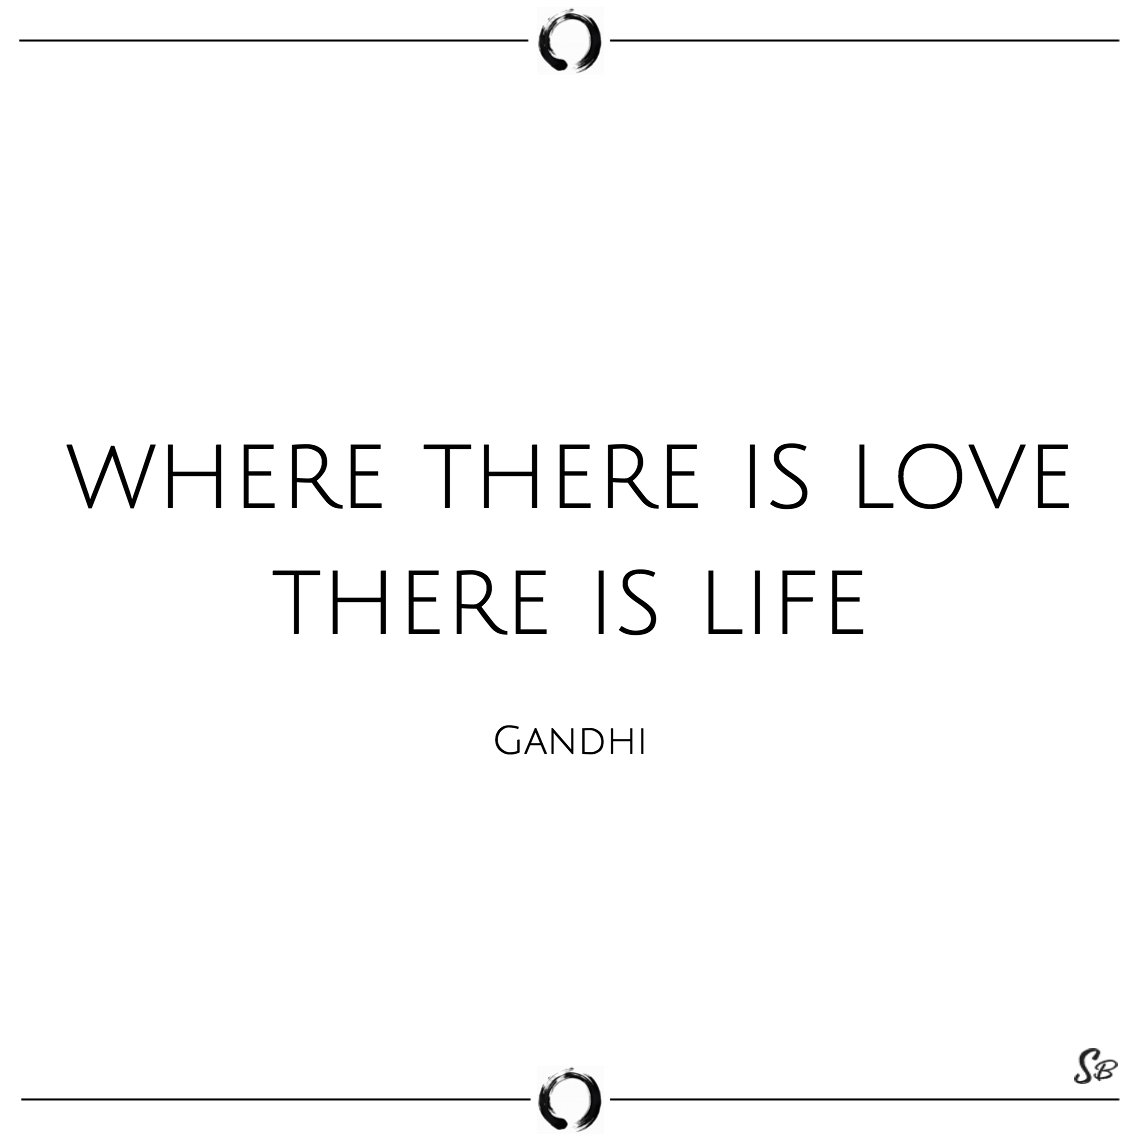 Where there is love there is life mahatma gandhi